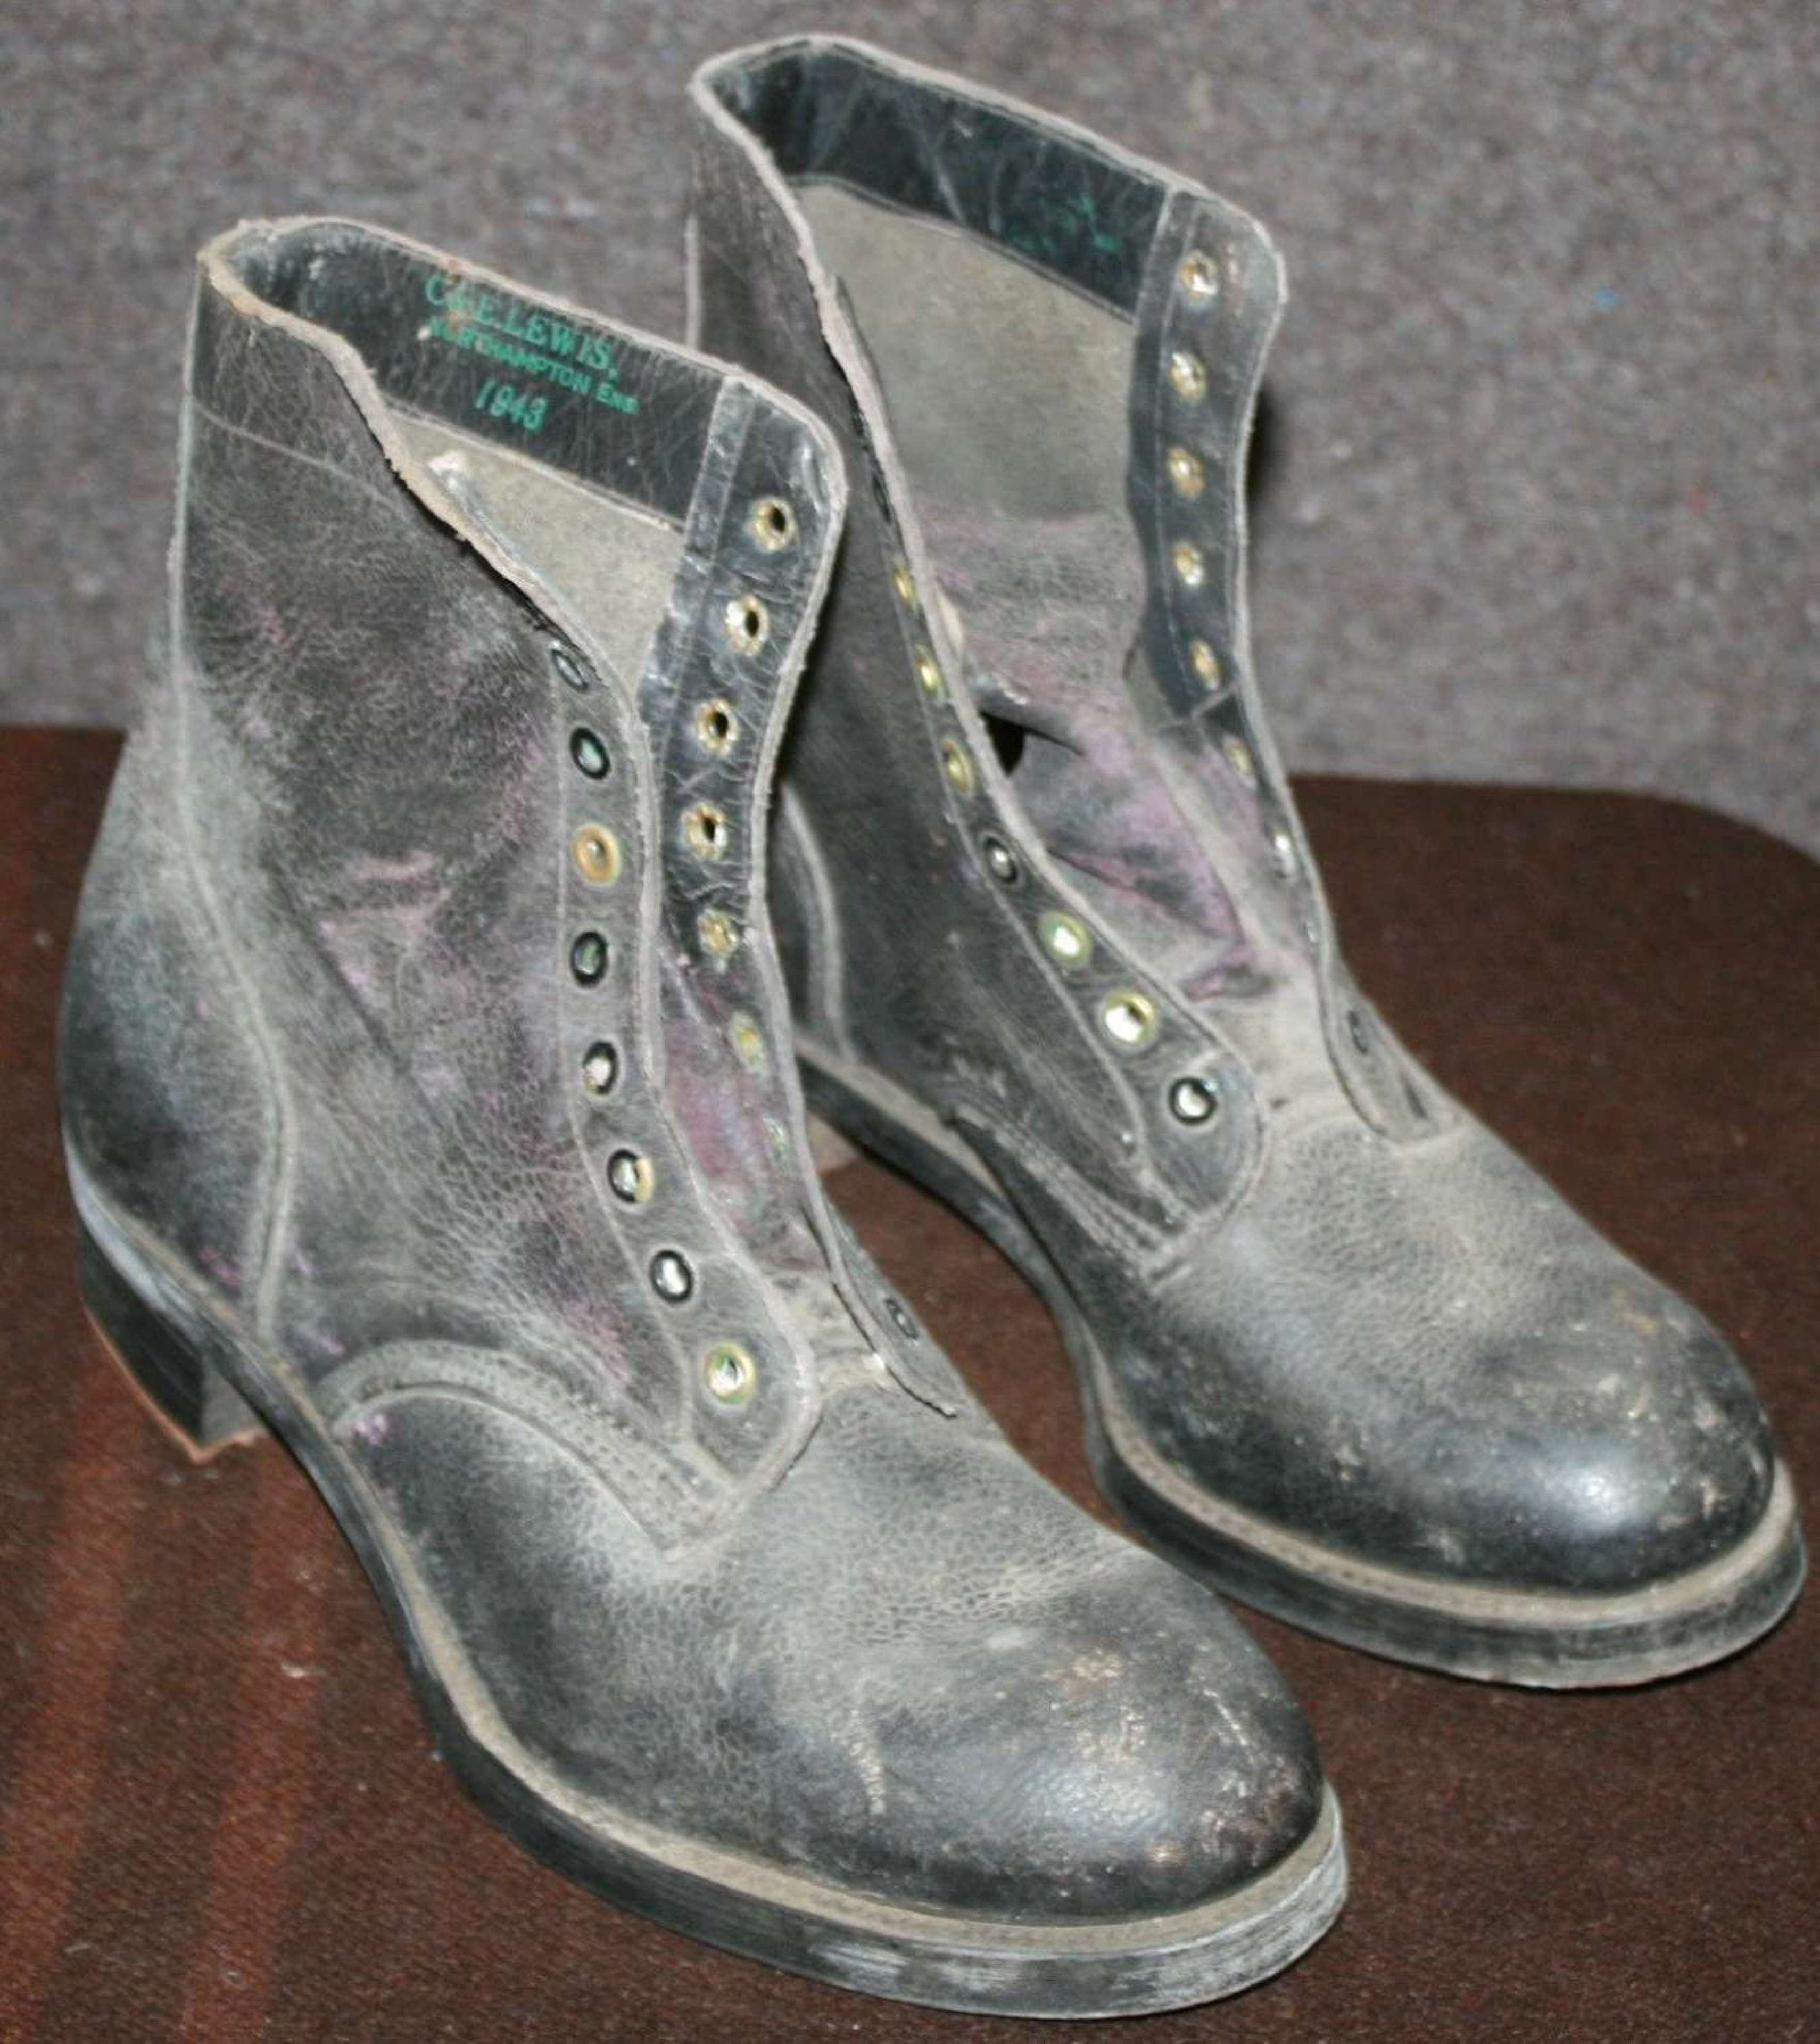 A PAIR OF 1943 DATED WRAF SIZE 5 S BOOTS